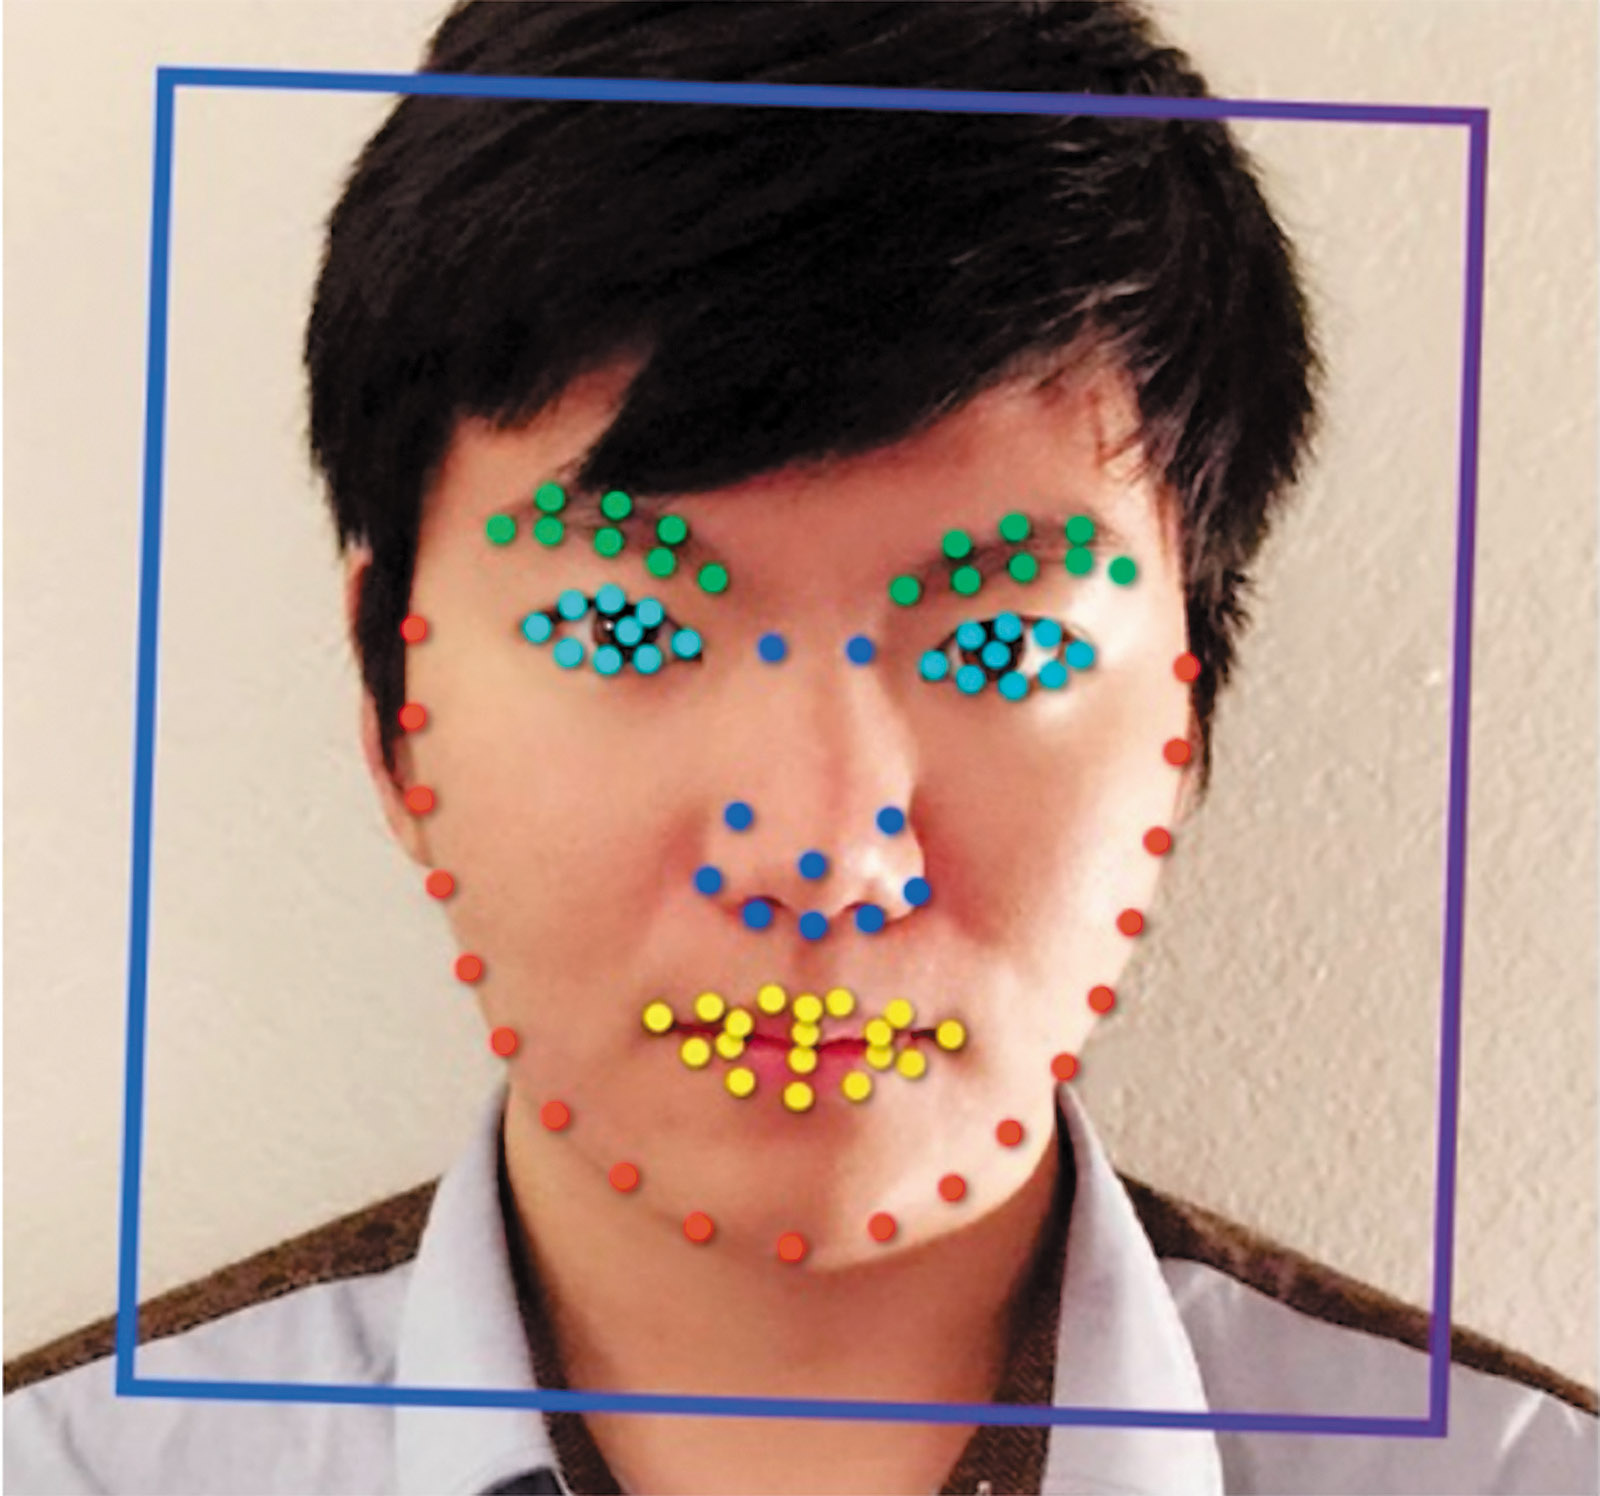 An illustration showing facial landmarks extracted with widely used facial recognition algorithms; from a recent study by Stanford researchers Michal Kosinski and Yilun Wang showing that such algorithms can reveal sexual orientation